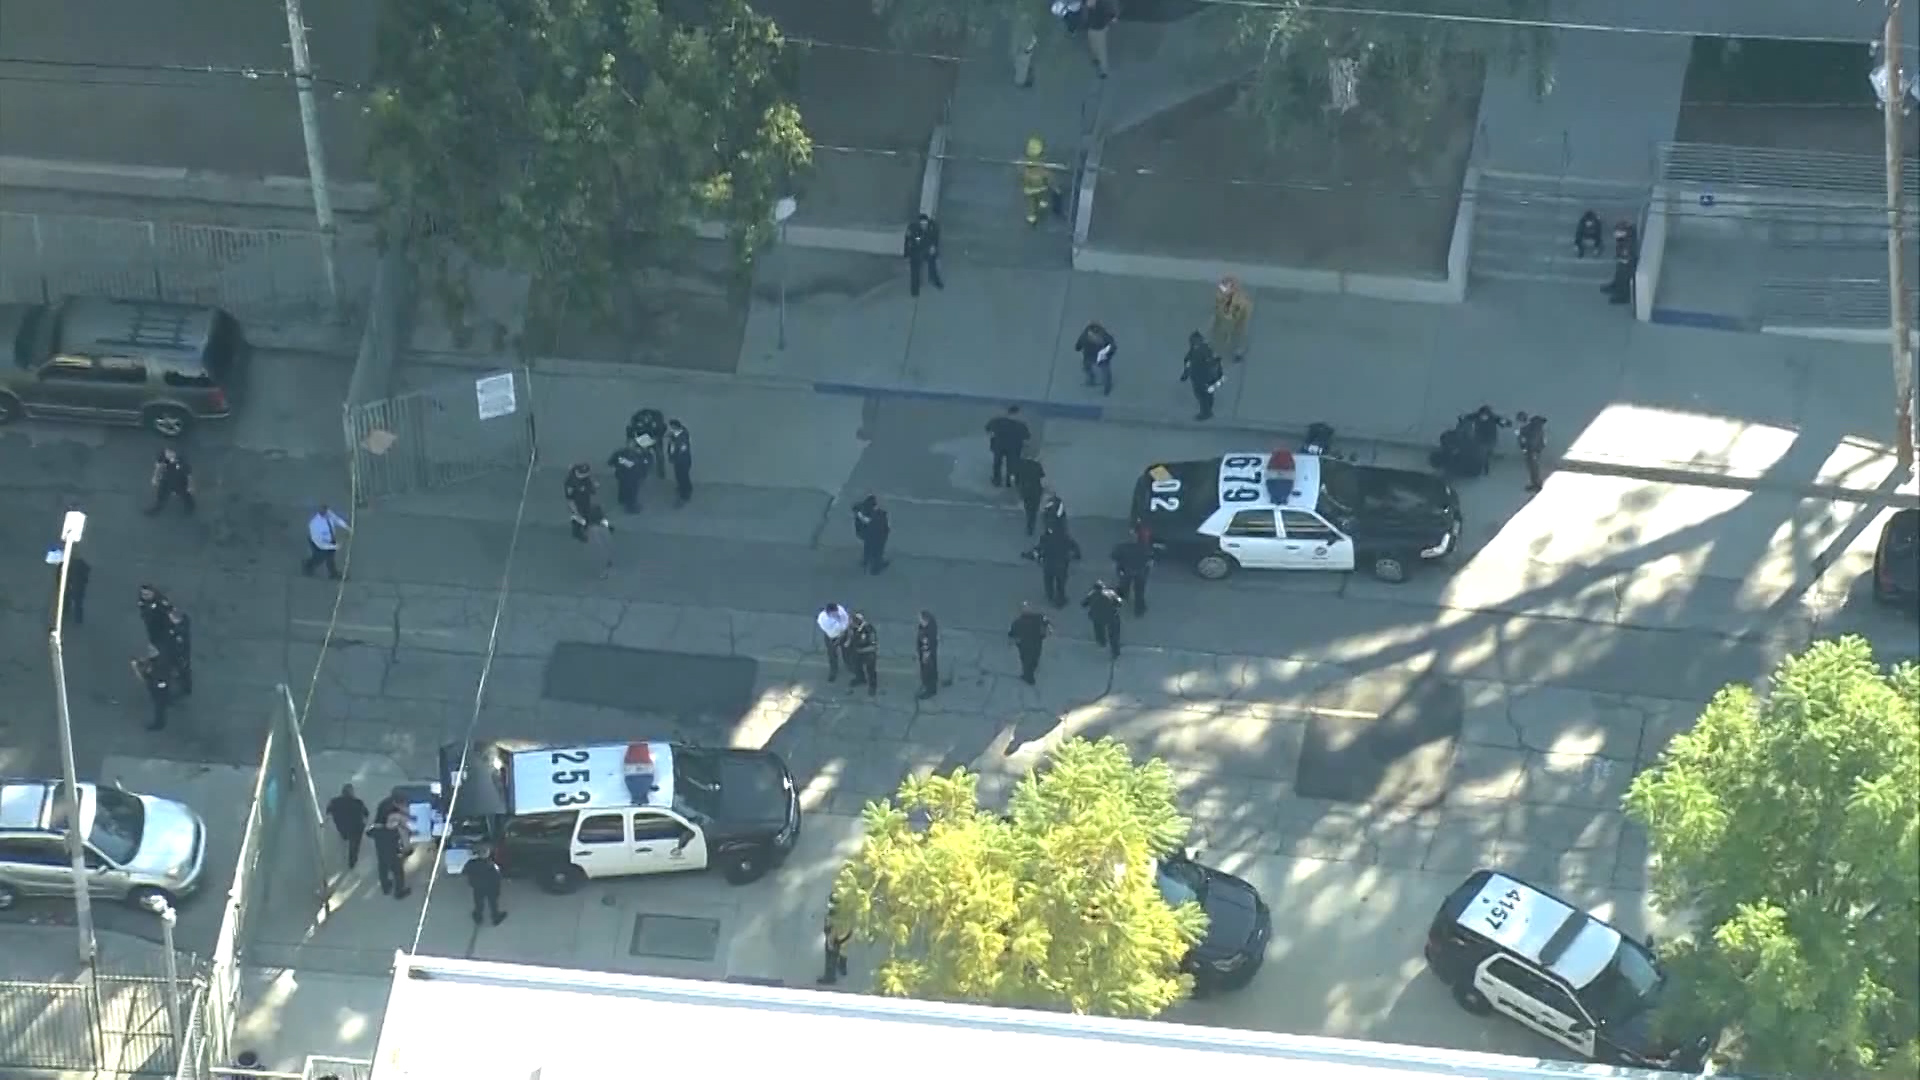 4 injured, one in custody after gunfire in Los Angeles school